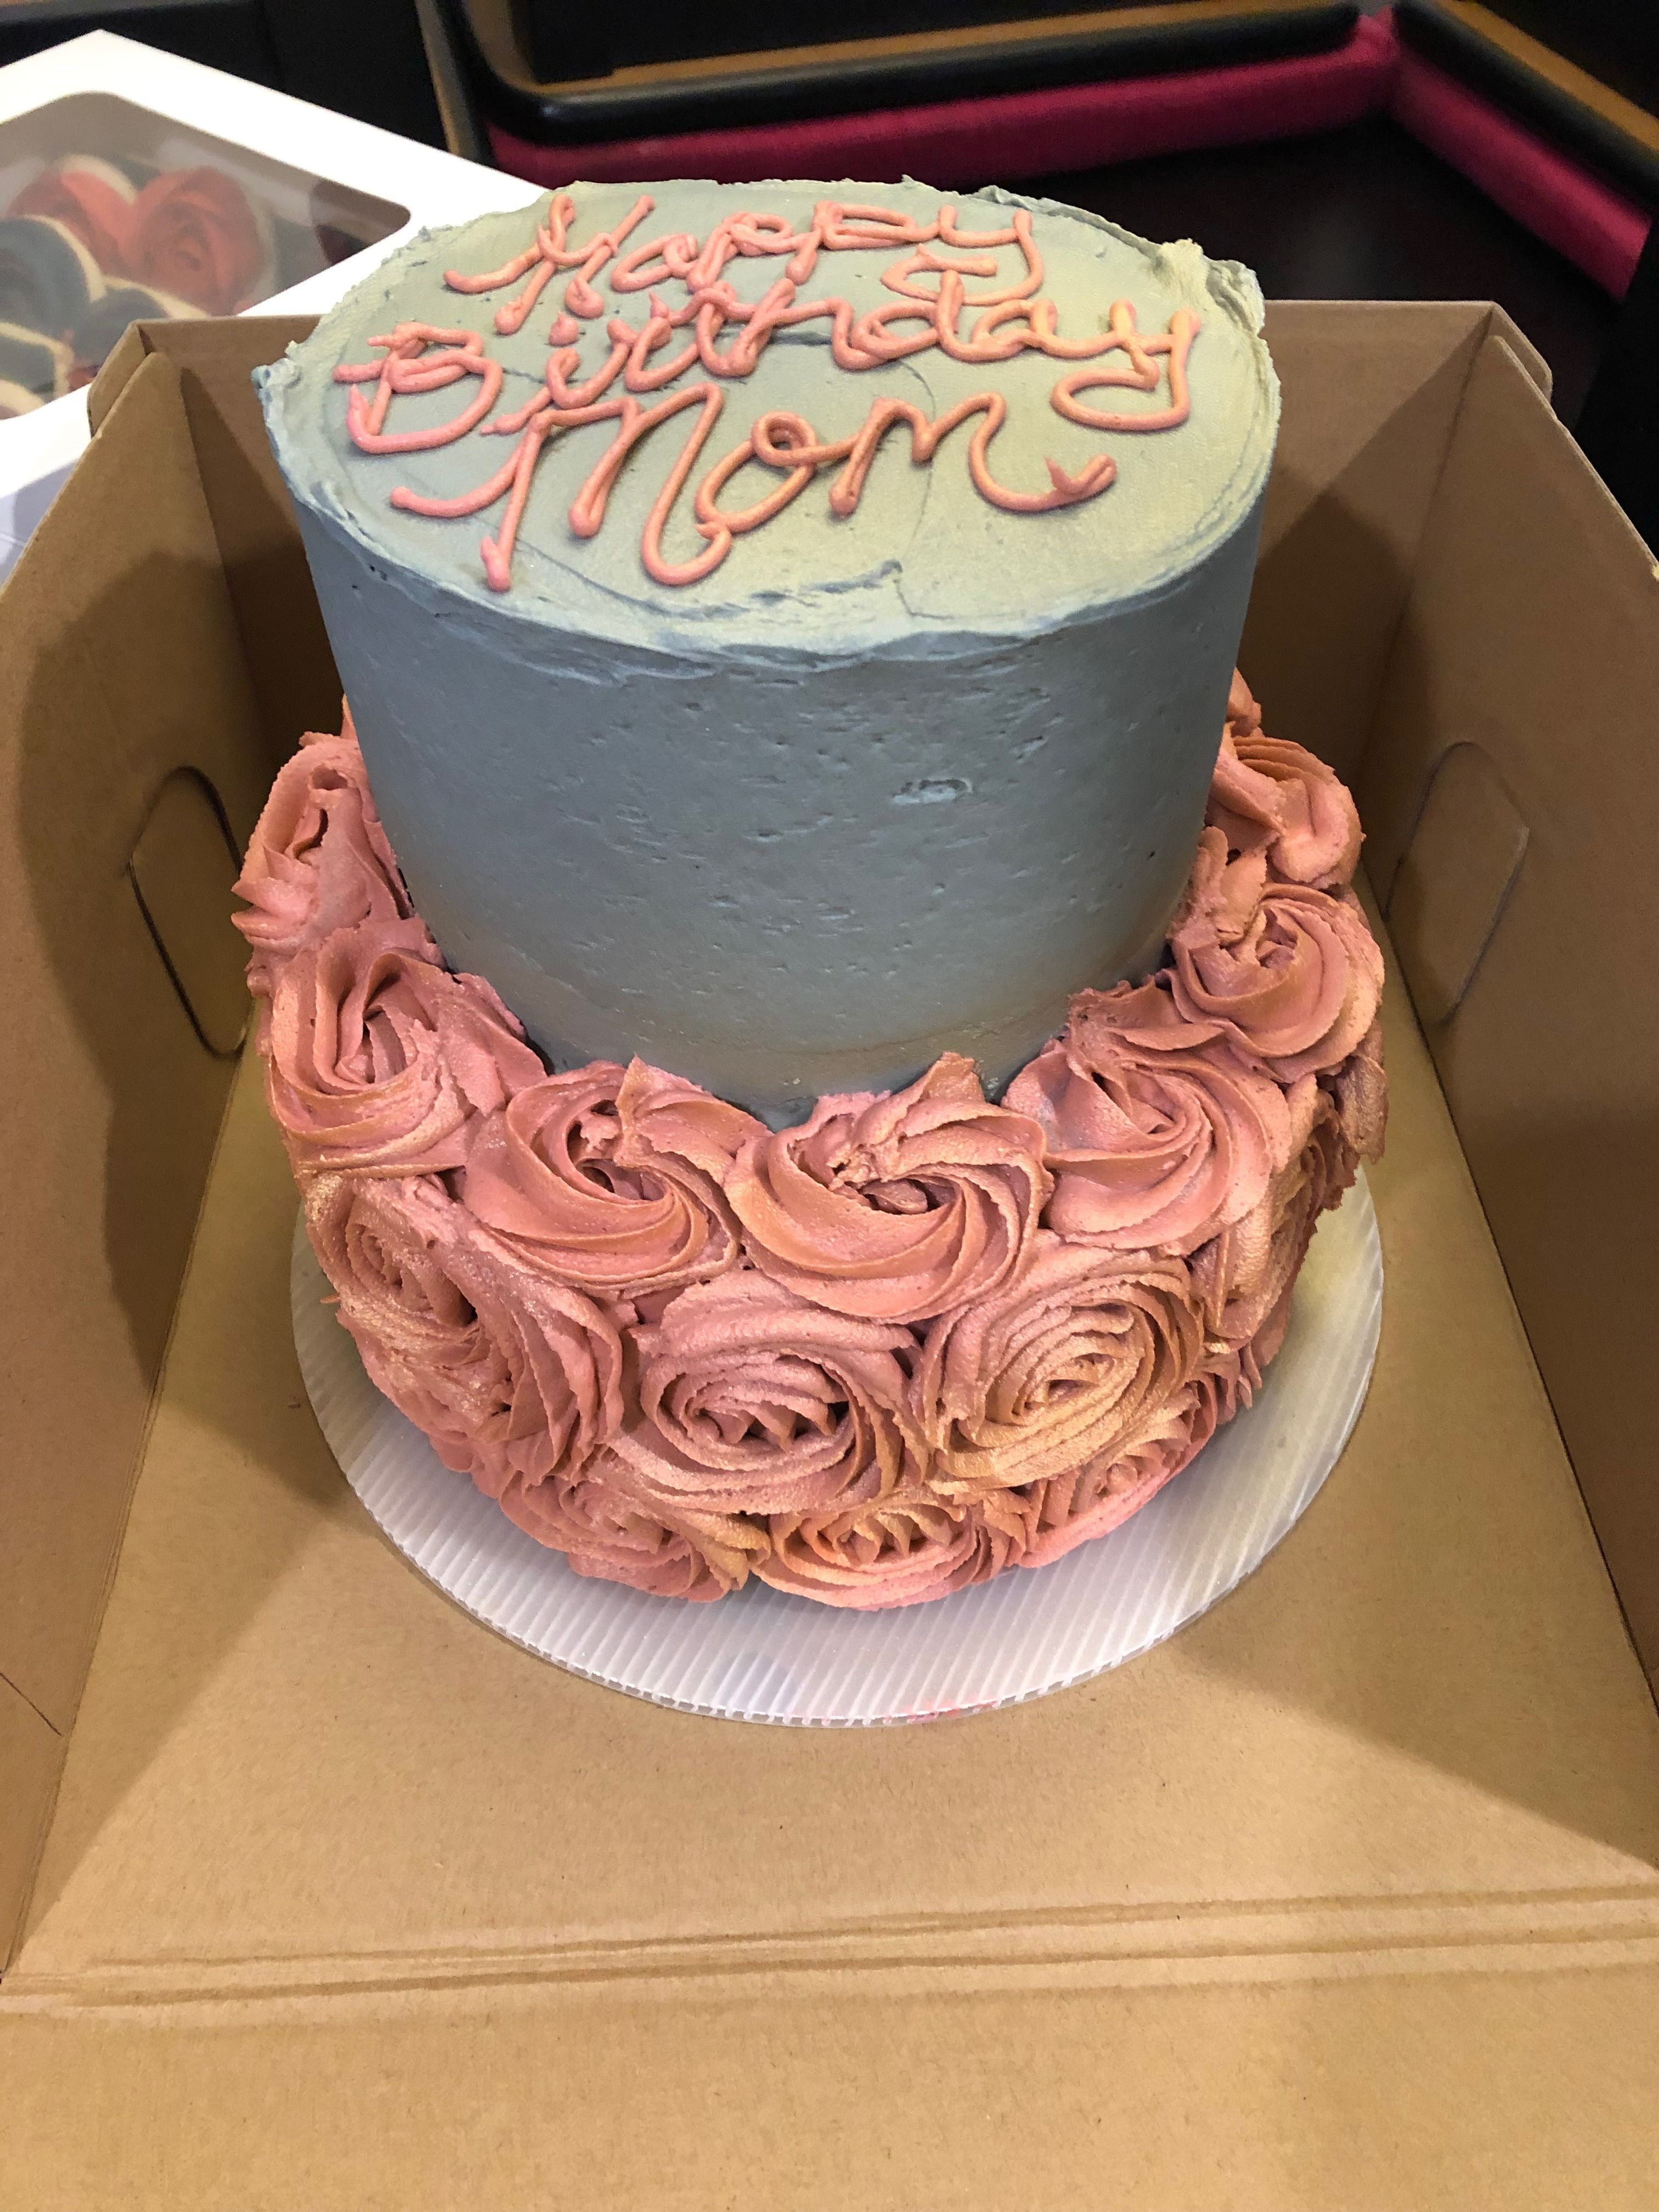 Birthday Cake For Mom Gray Top With Soft Rose Color For The Bottom Birthday Cake For Mom Mom Cake Cake